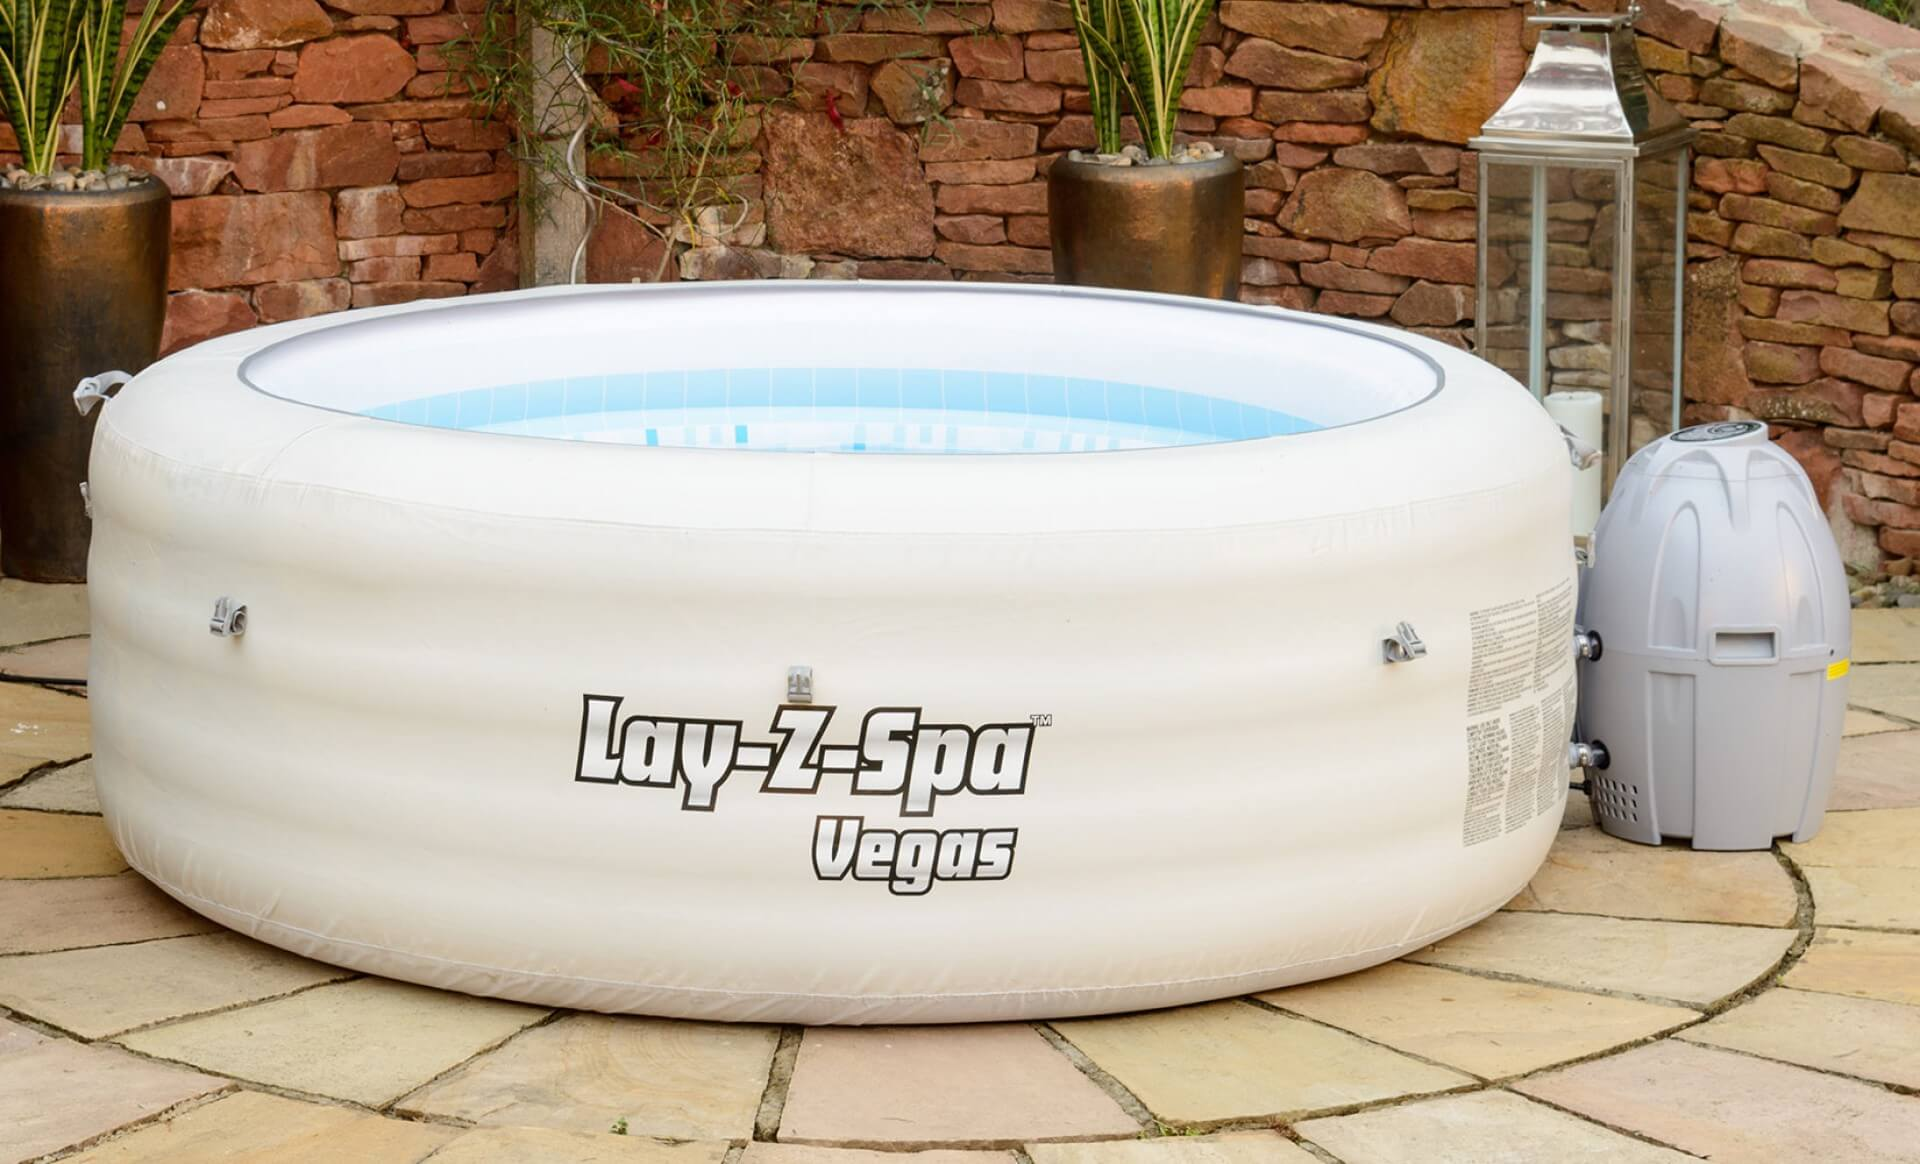 Bestway Lay Z Spa Vegas Airjet Premium Inflatable Hot Tub Pure